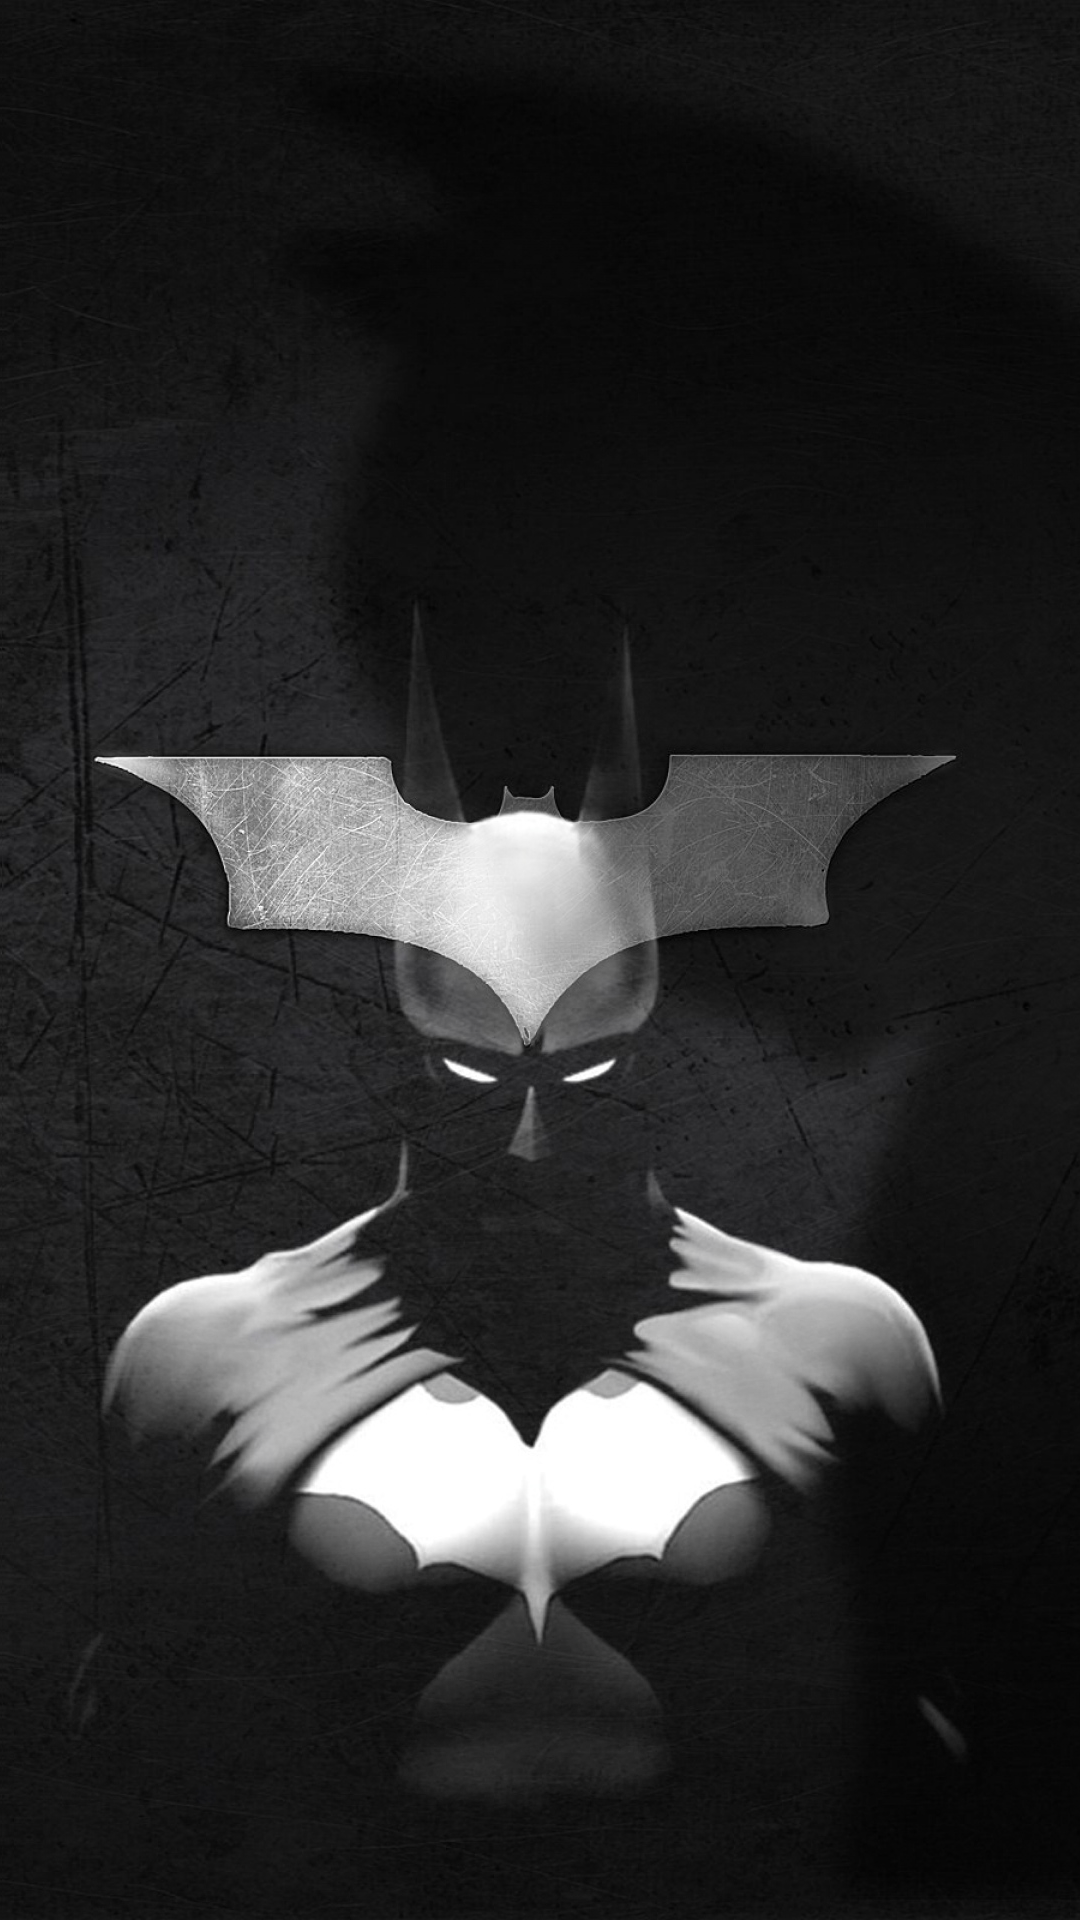 Ultra HD Batman Concept Wallpaper For Your Mobile Phone ...